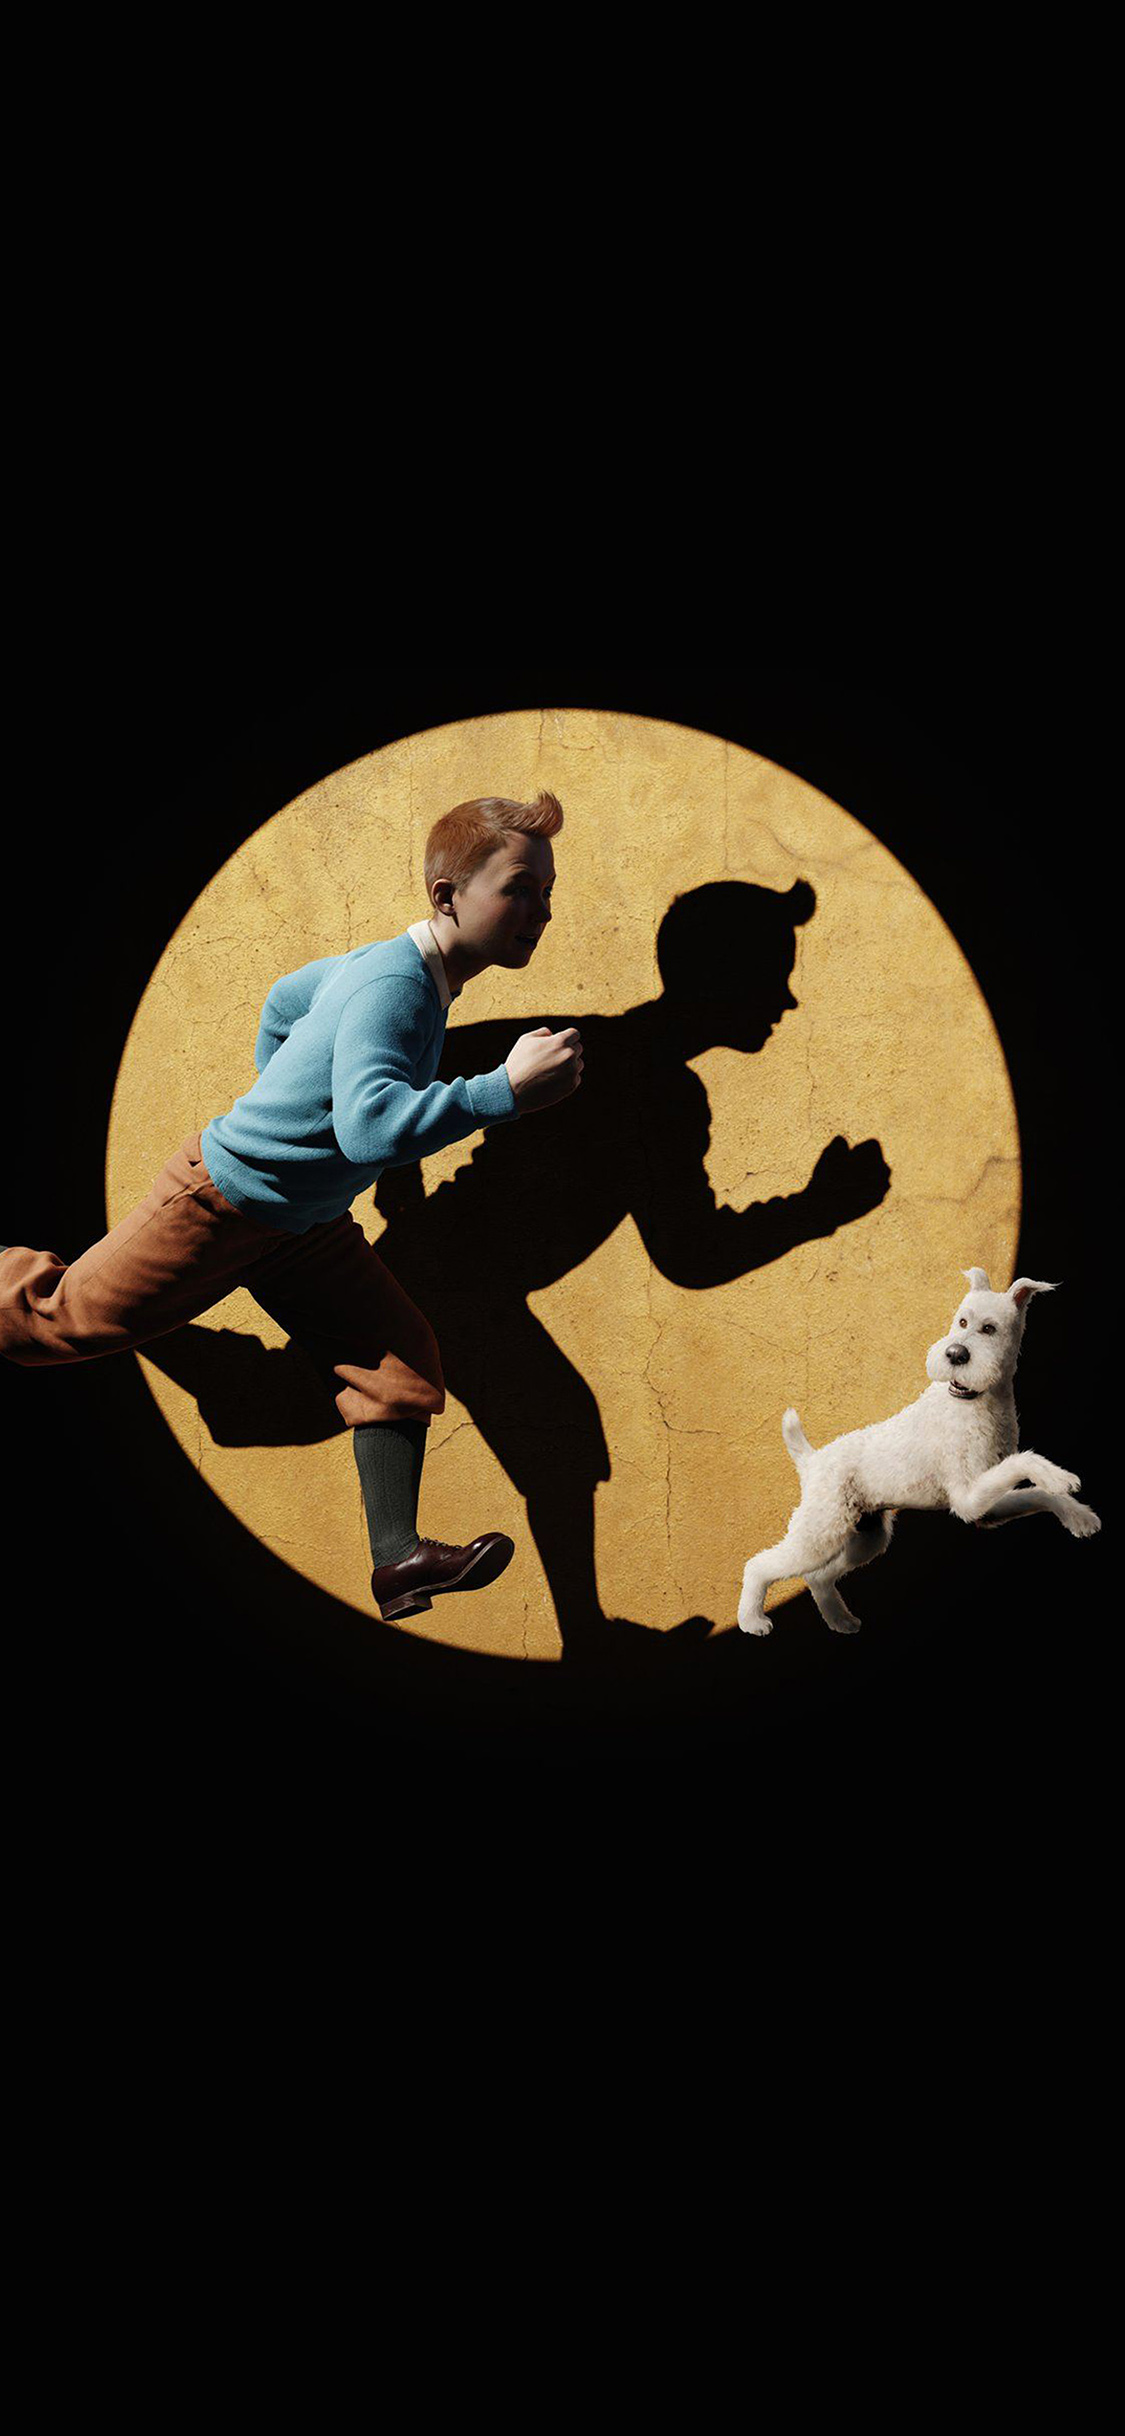 papers.co ap70 tintin 3d art dark illustration 41 iphone wallpaper